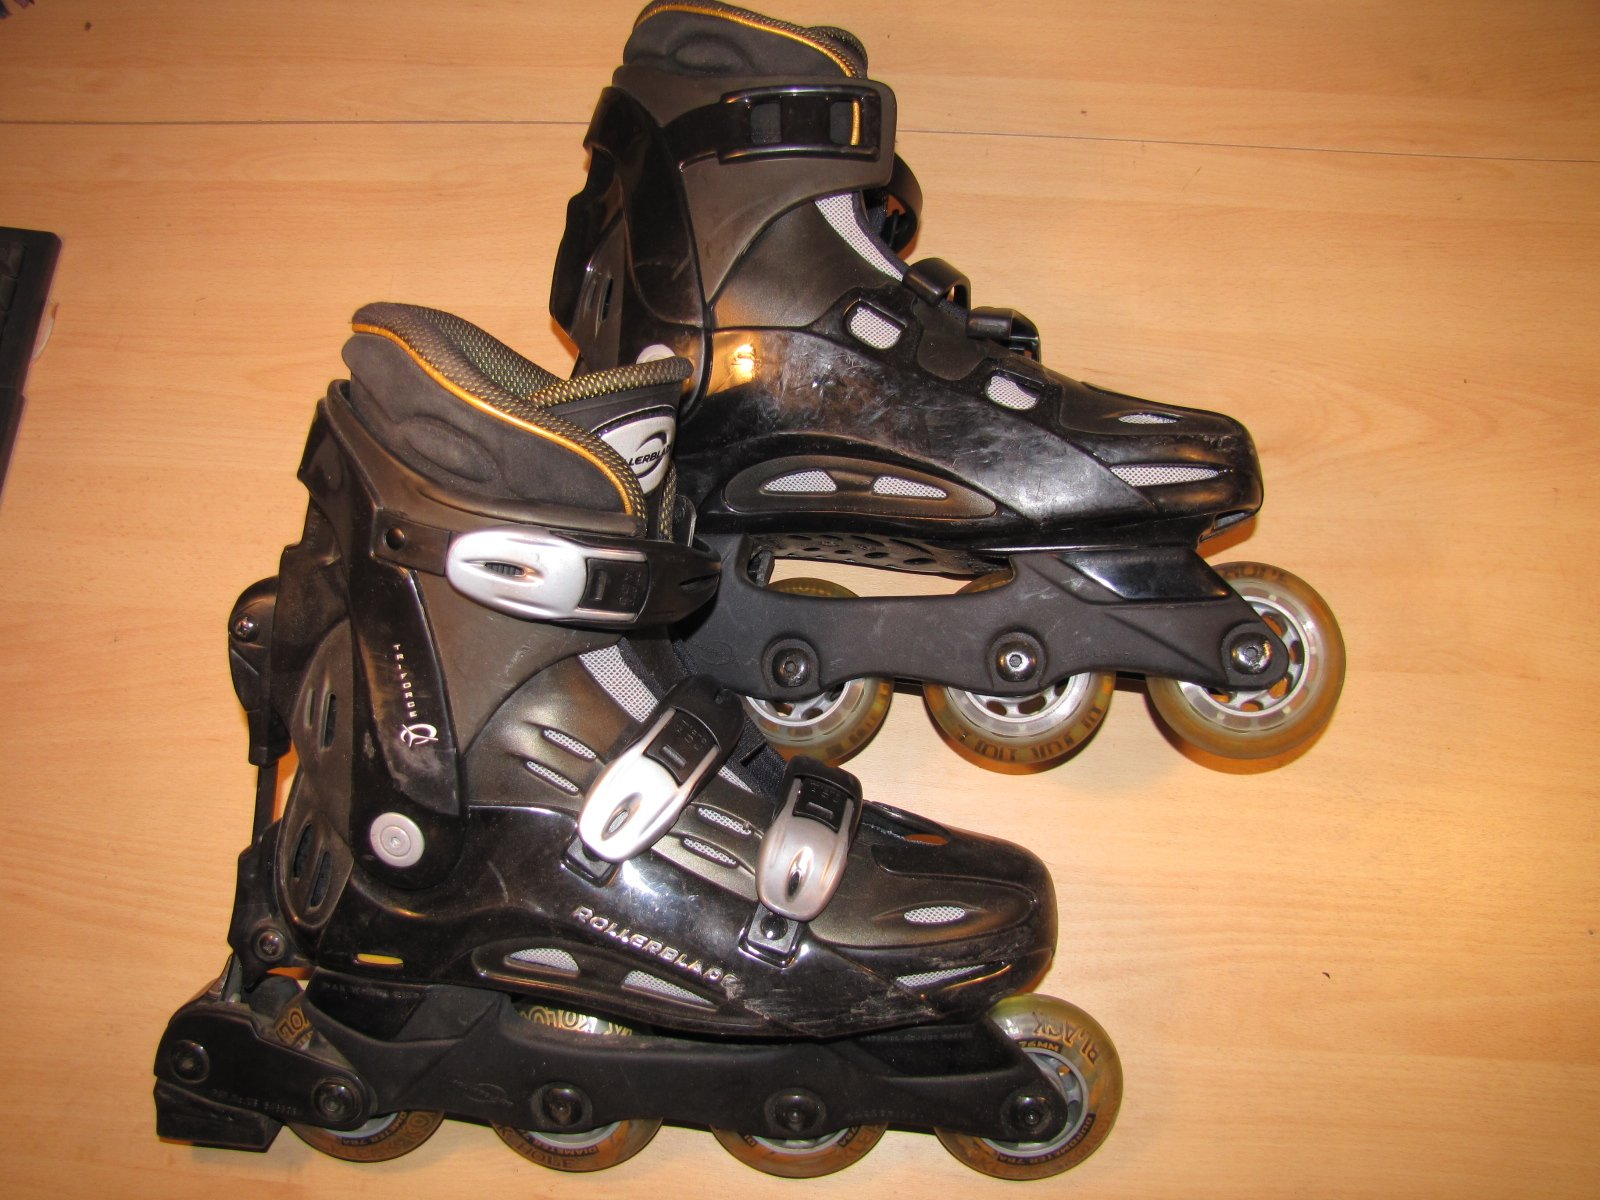 rollerblade_e4-2_lady_t26-5_1